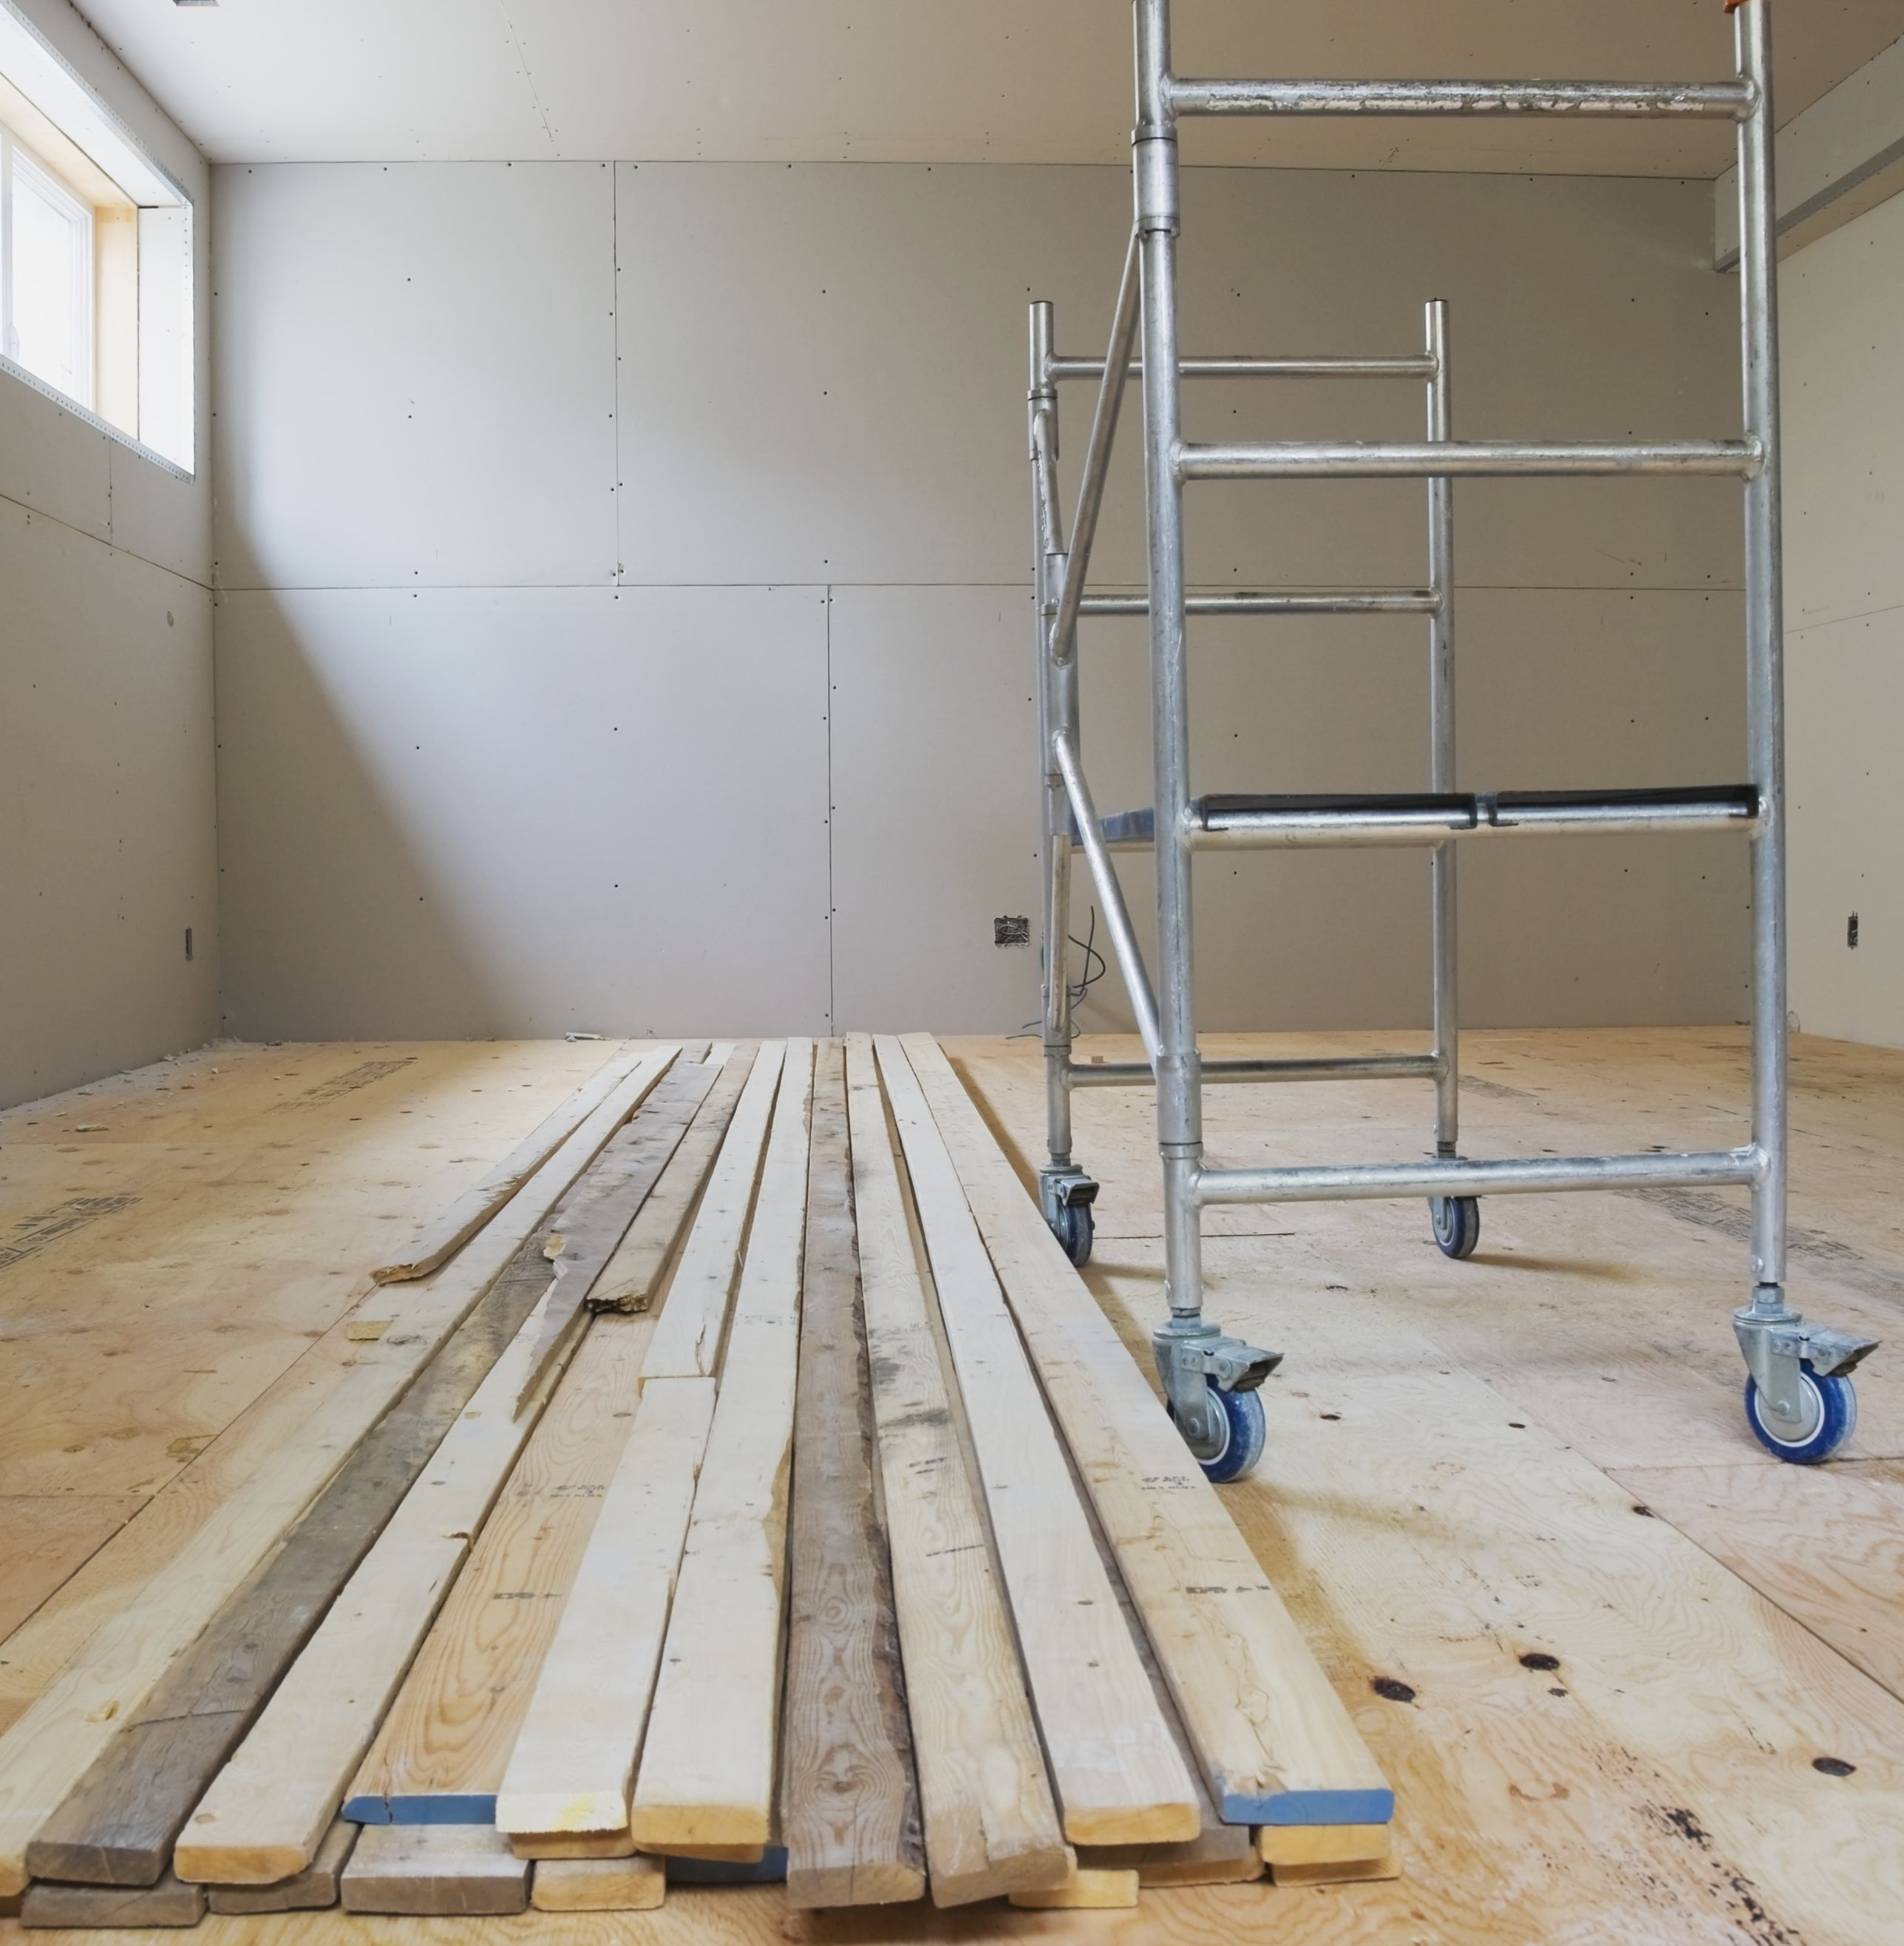 4 Basement Subfloor Options For A Dry Warm Floor Covering